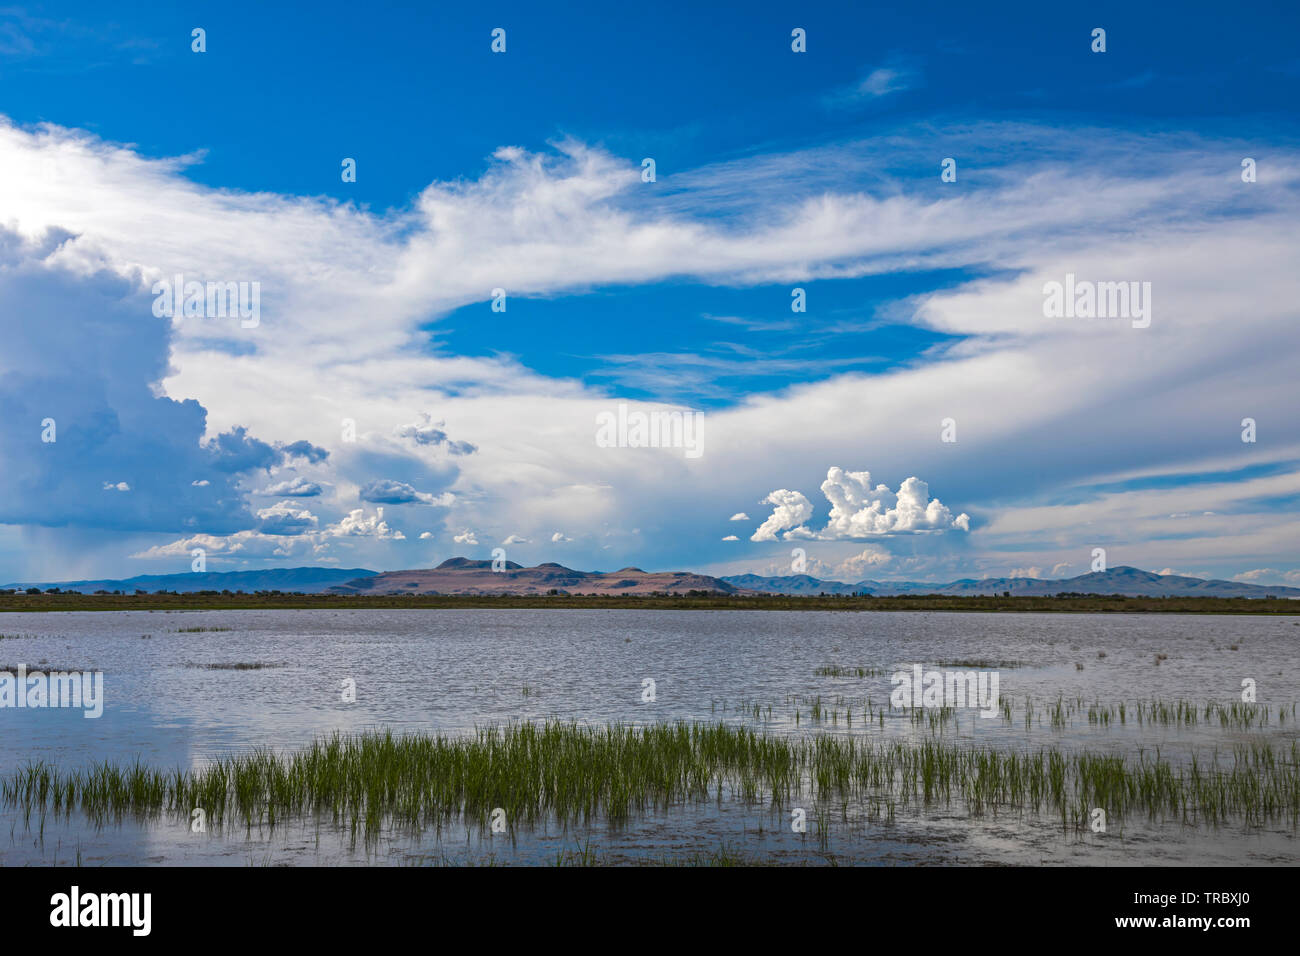 This is a view of the waters of Bear River Migratory Bird Refuge west of Brigham City, Utah. This view looks north as you enter from the east. - Stock Image